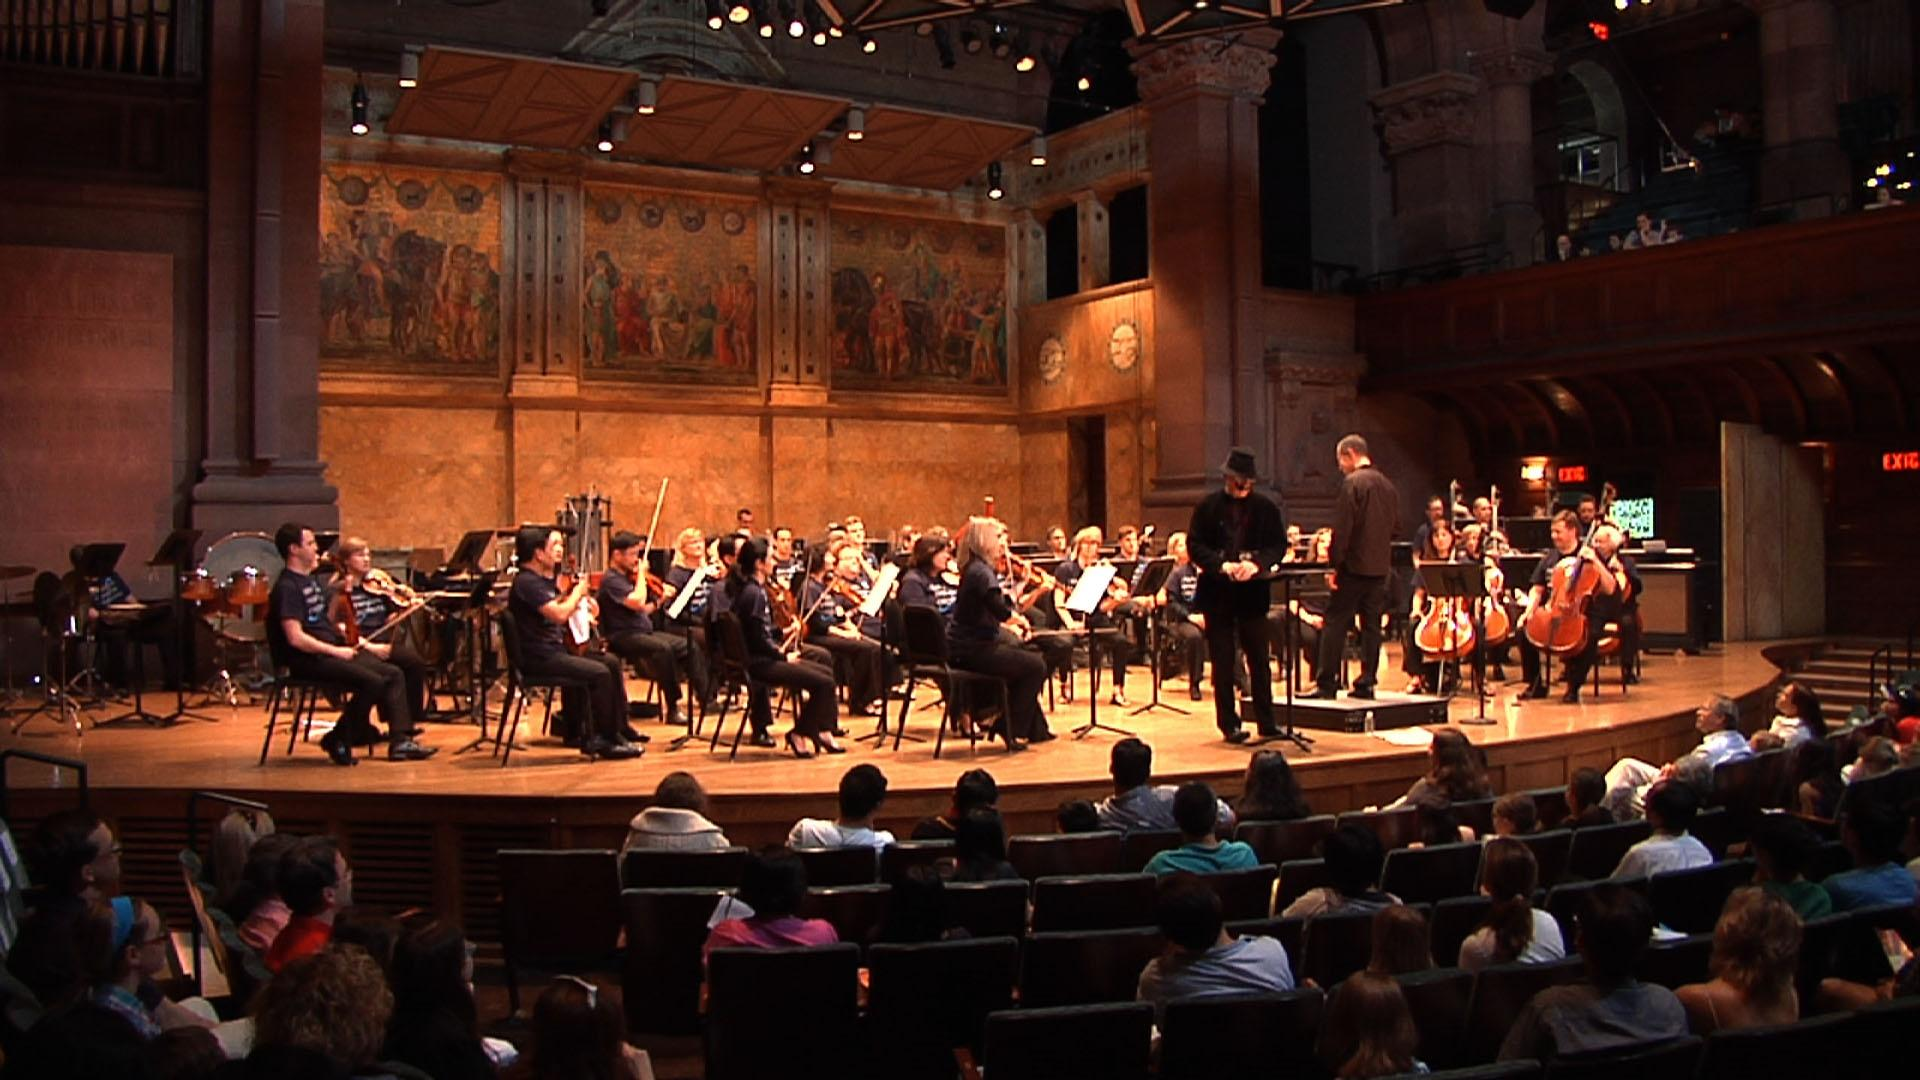 video princeton symphony orchestra shows kids classical music watch njtv news online mpt. Black Bedroom Furniture Sets. Home Design Ideas